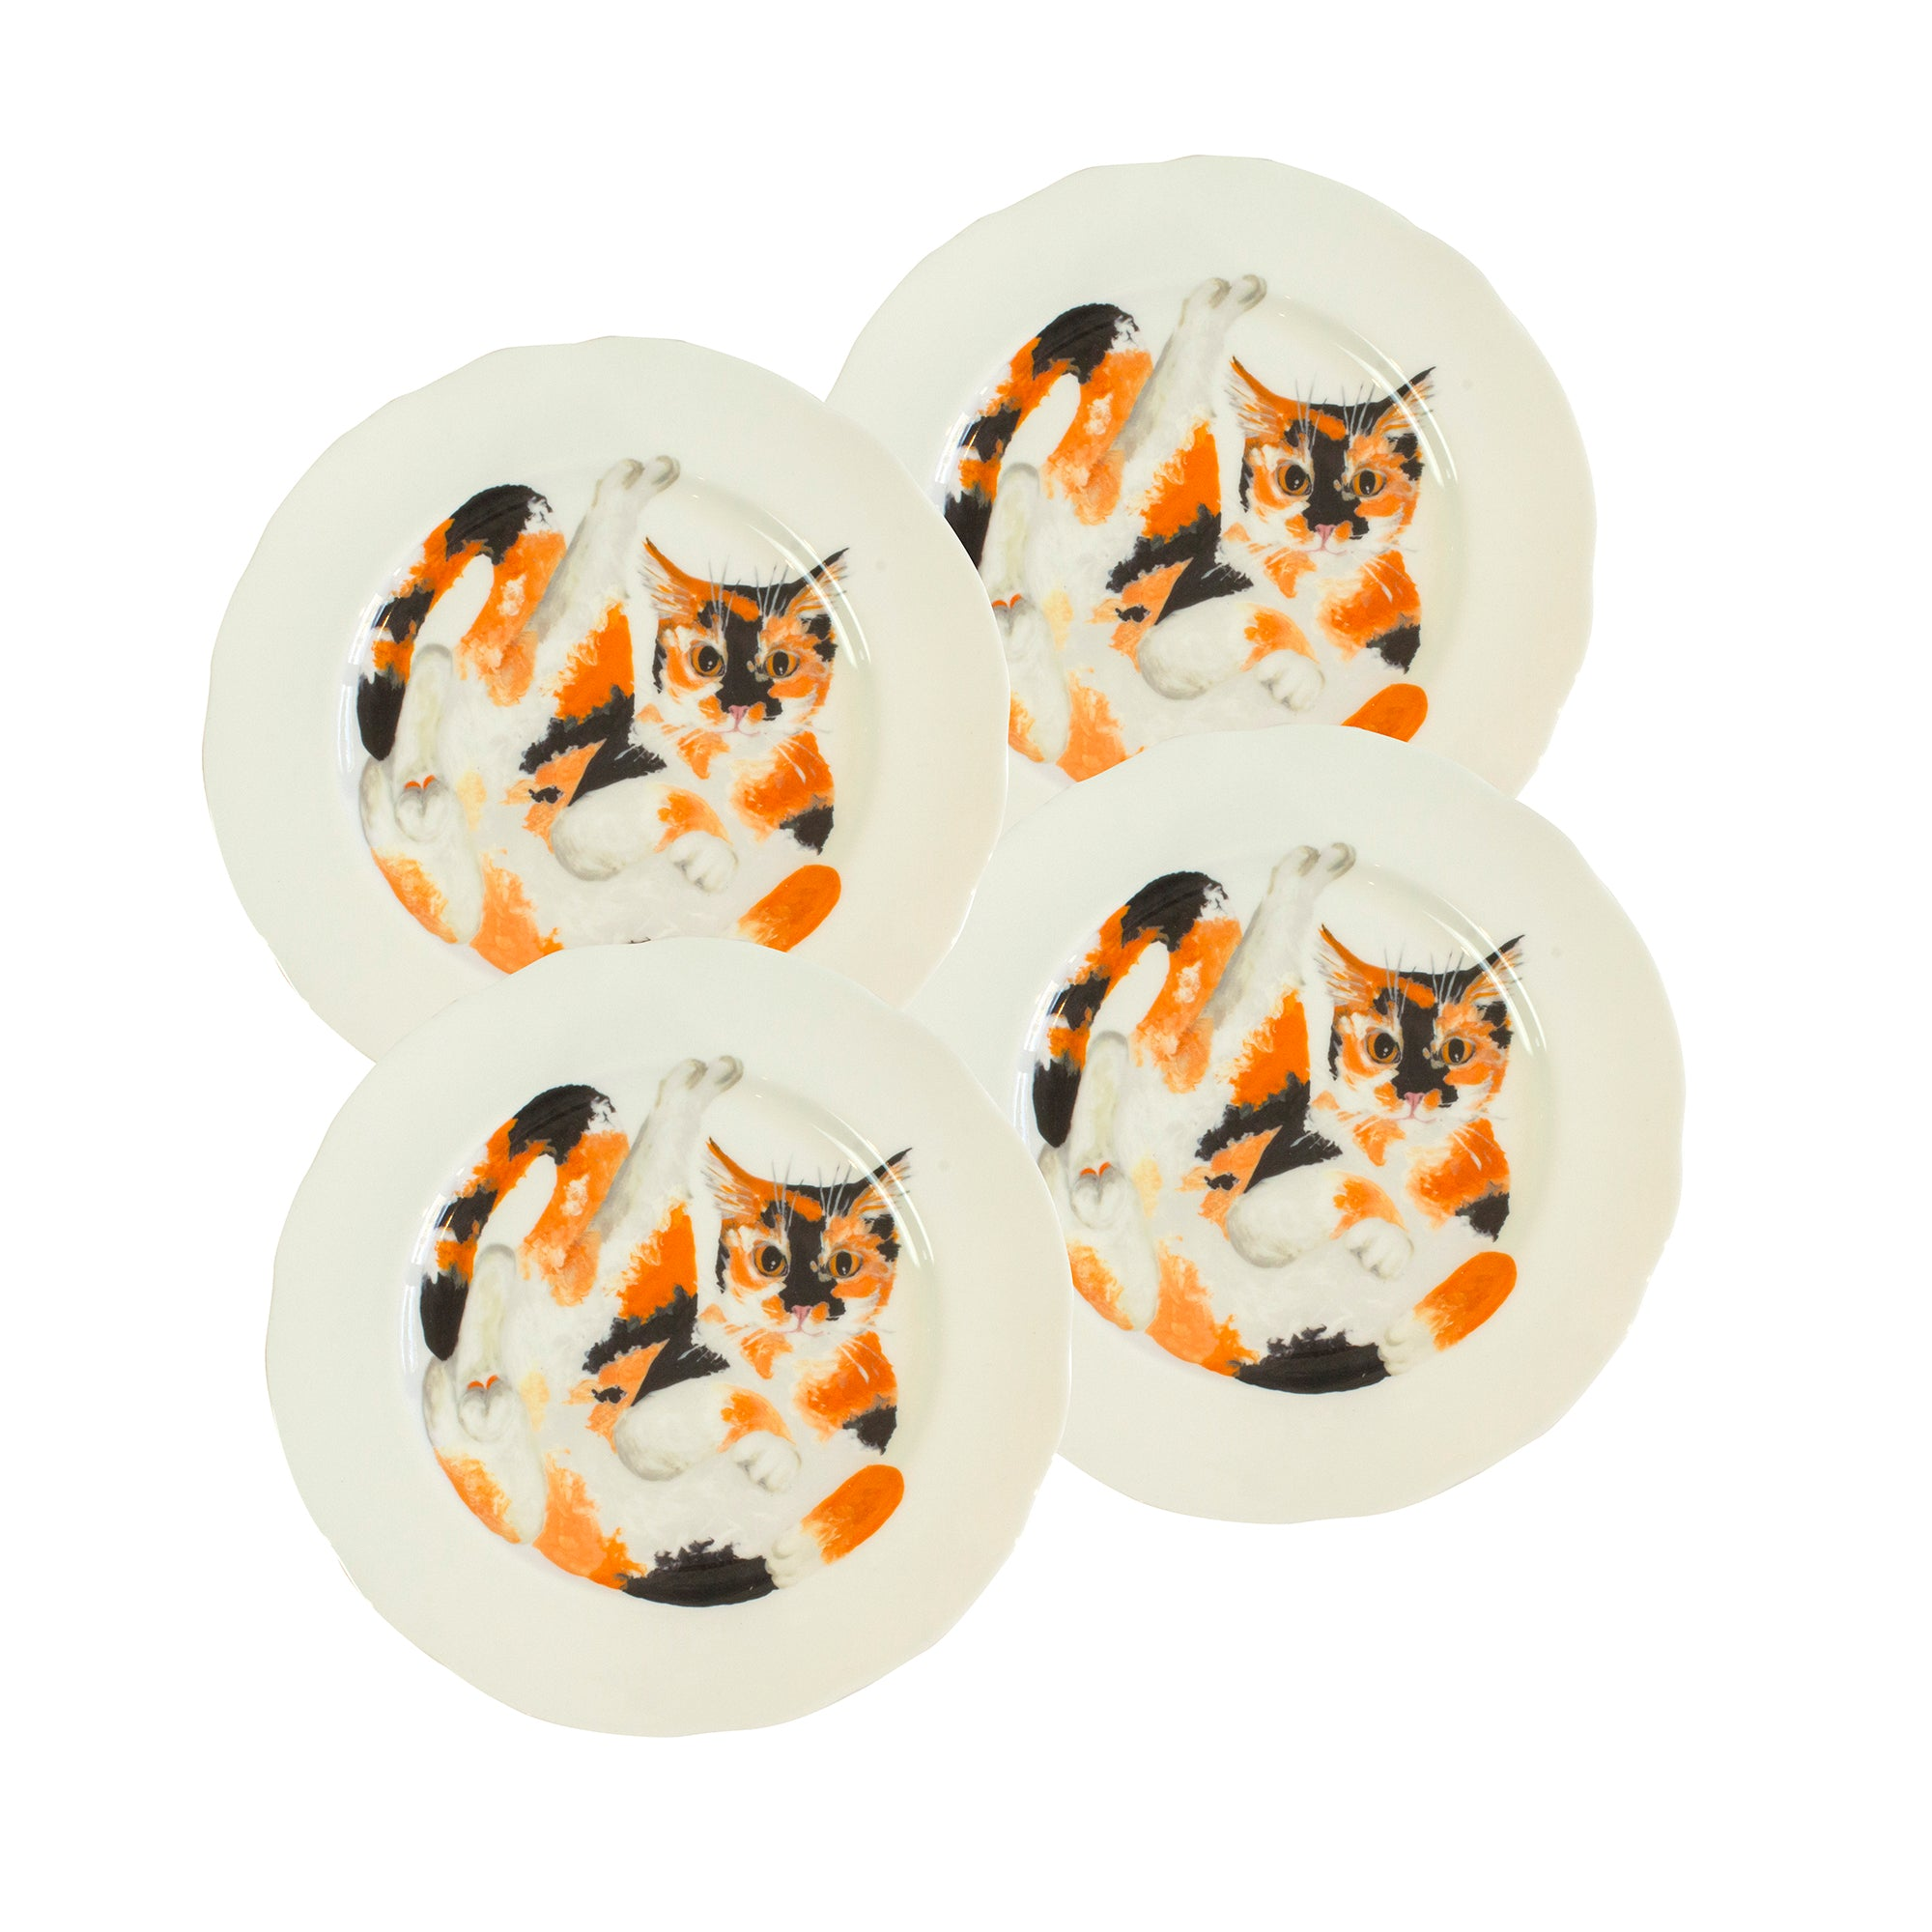 White china plates with illustrated tortoiseshell cats printed on them. Dinner plate size. Catnap Design London.